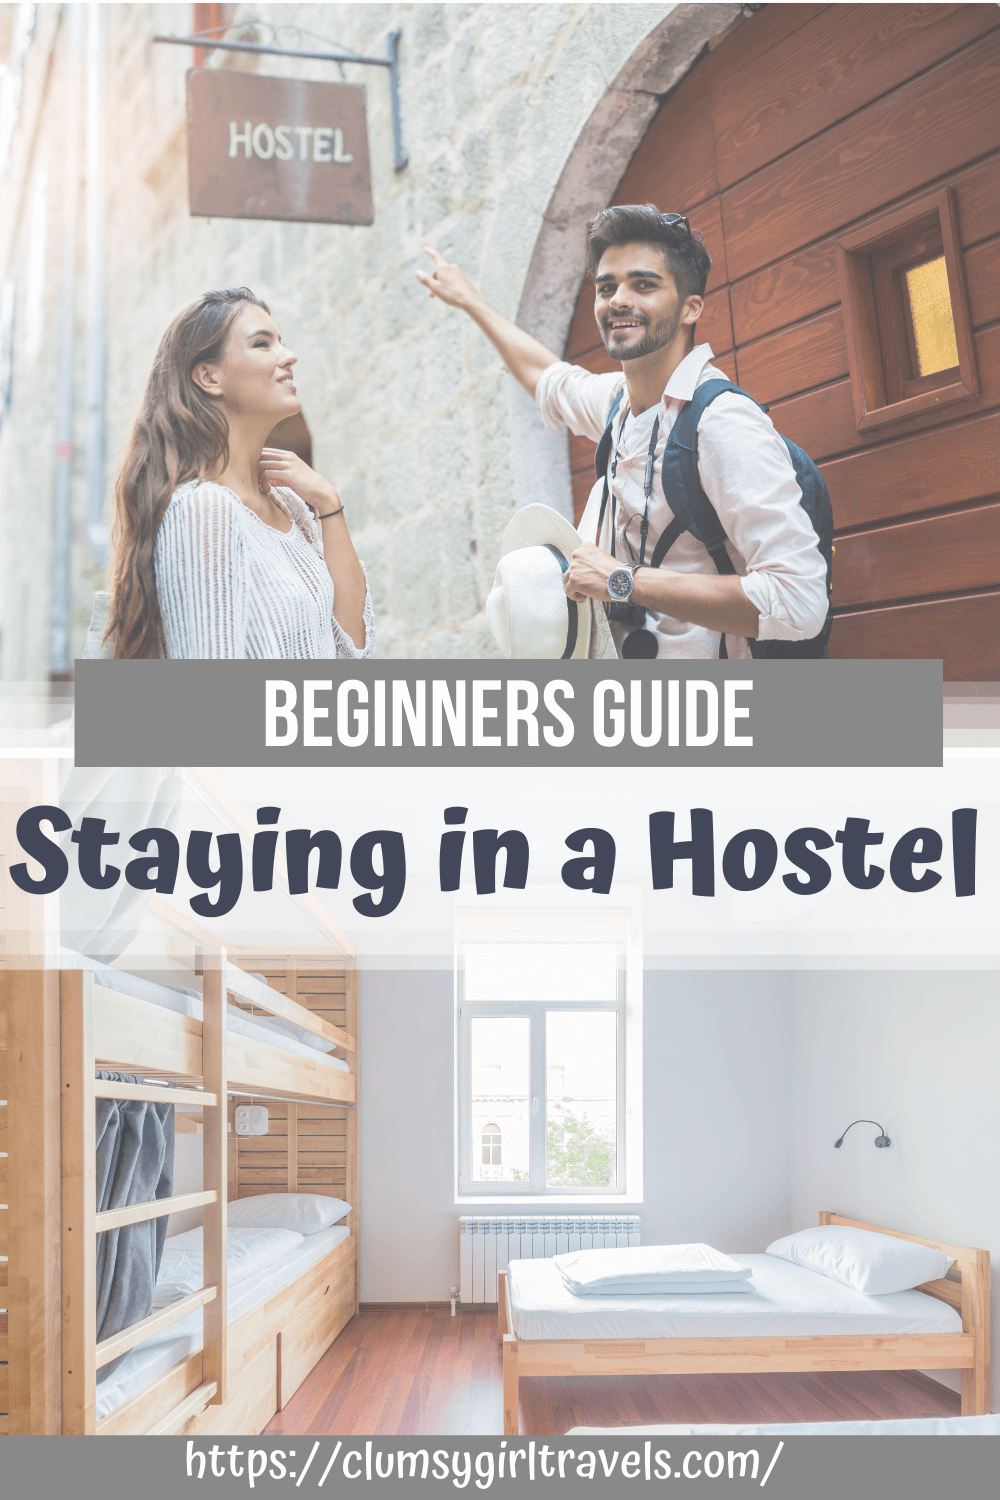 Discover what it's like staying in a hostel for the first time and why you should definitely do it, in this beginner's guide to staying in a hostel. #hostel #stayinginahostel #hostelife